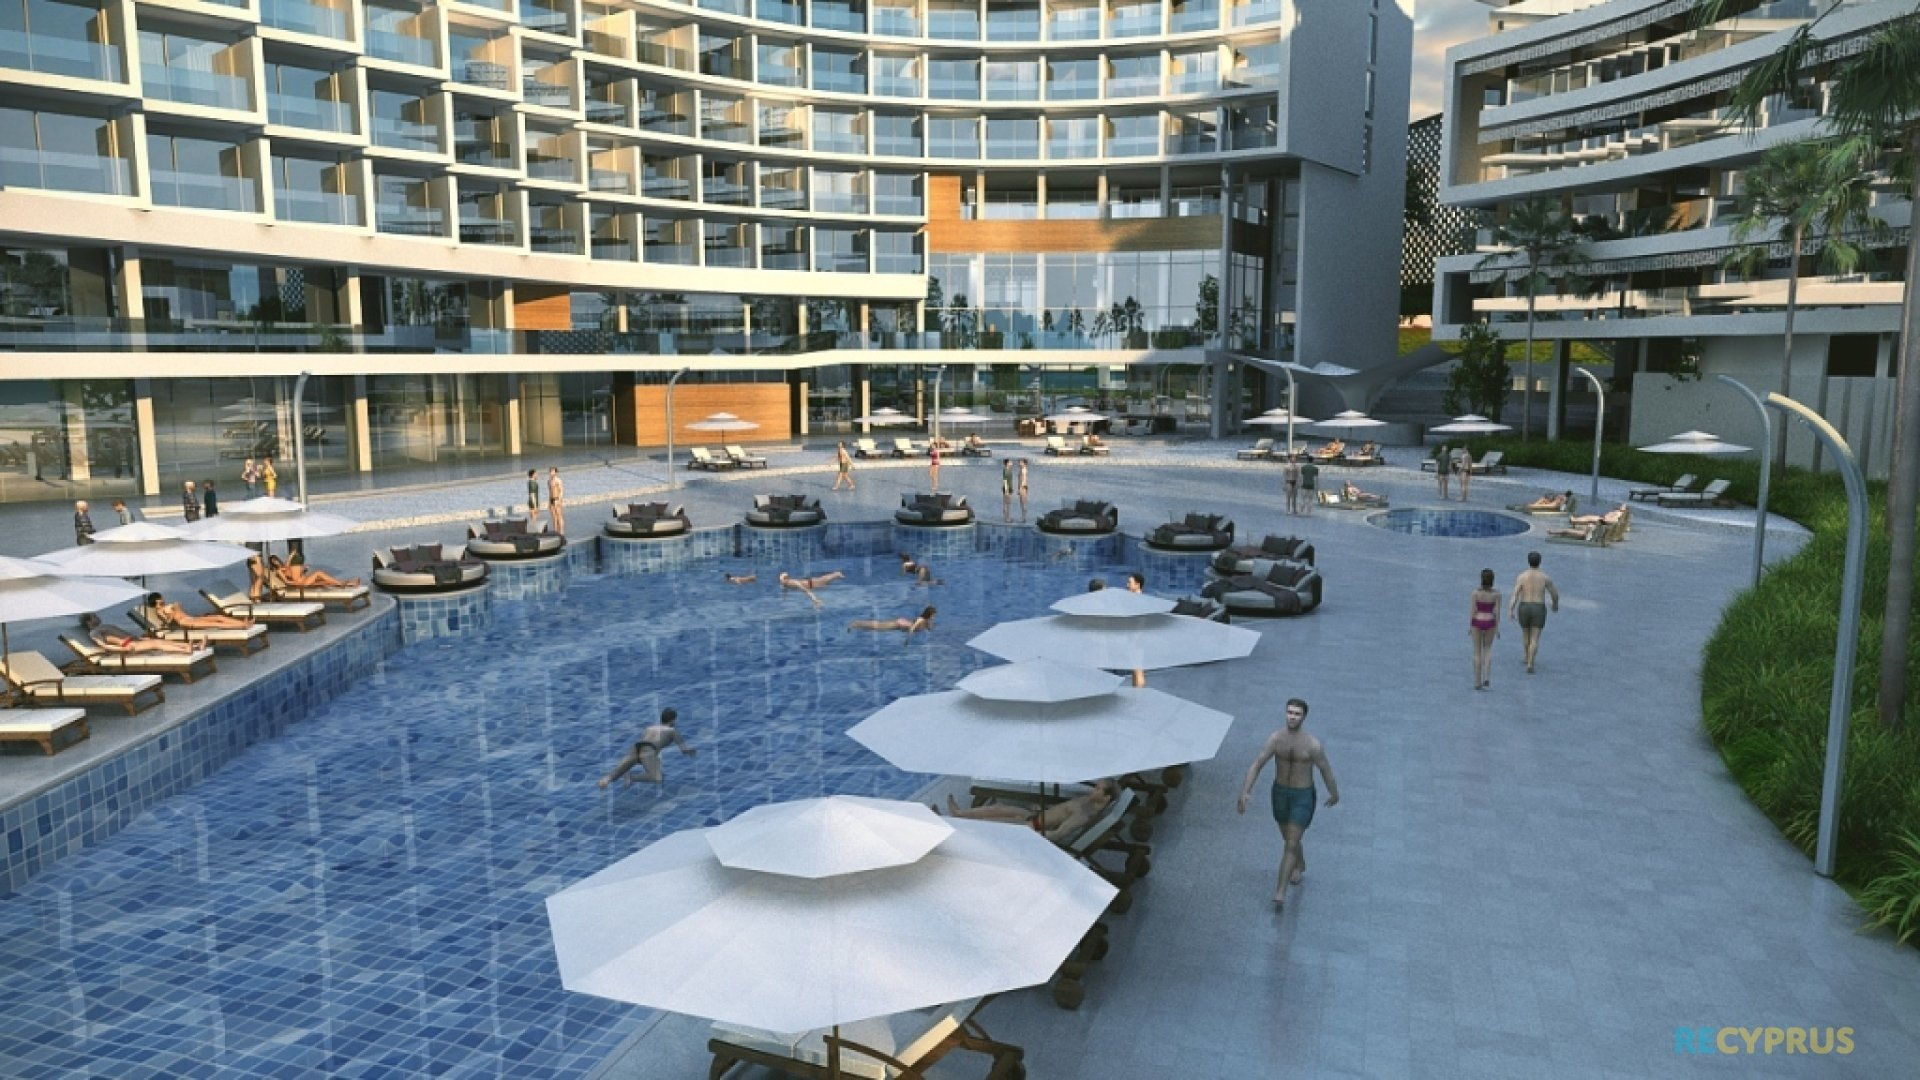 Apartment for sale Ayia Thekla Famagusta Cyprus 12 3477